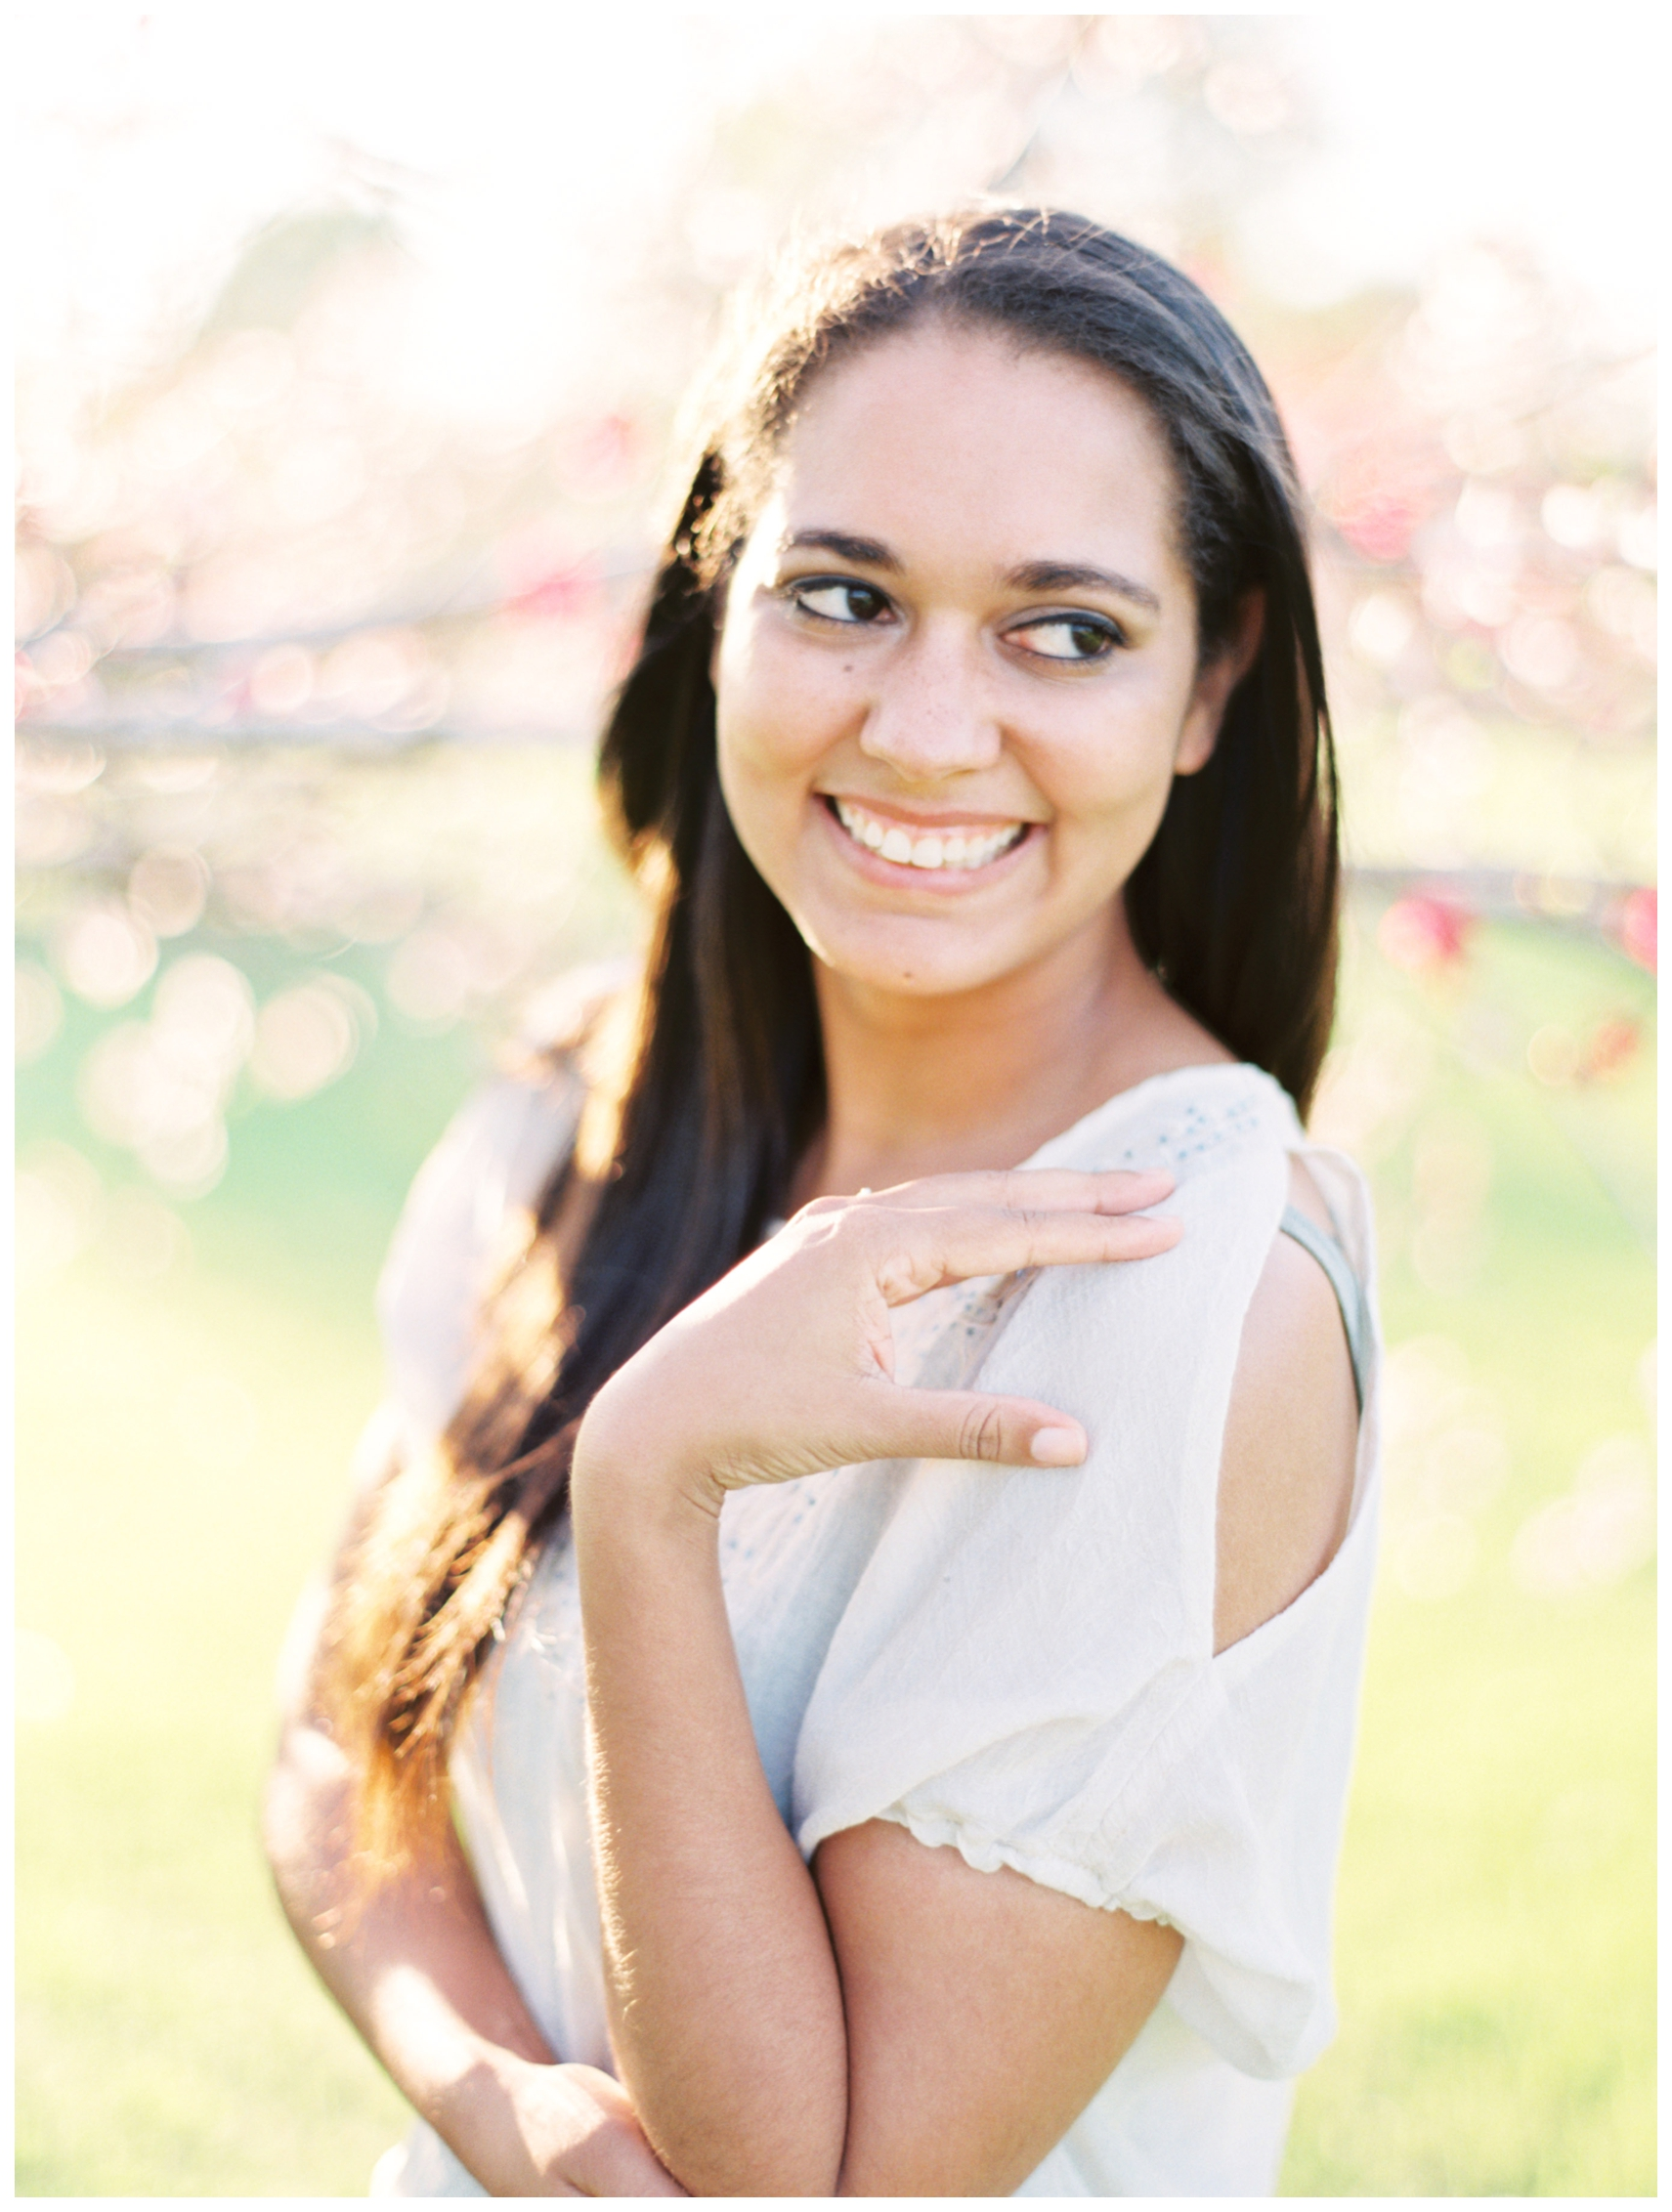 Nyssa & JD Engagements - Rock Lake Ranch - College Station Tx - Film-10_STP.jpg